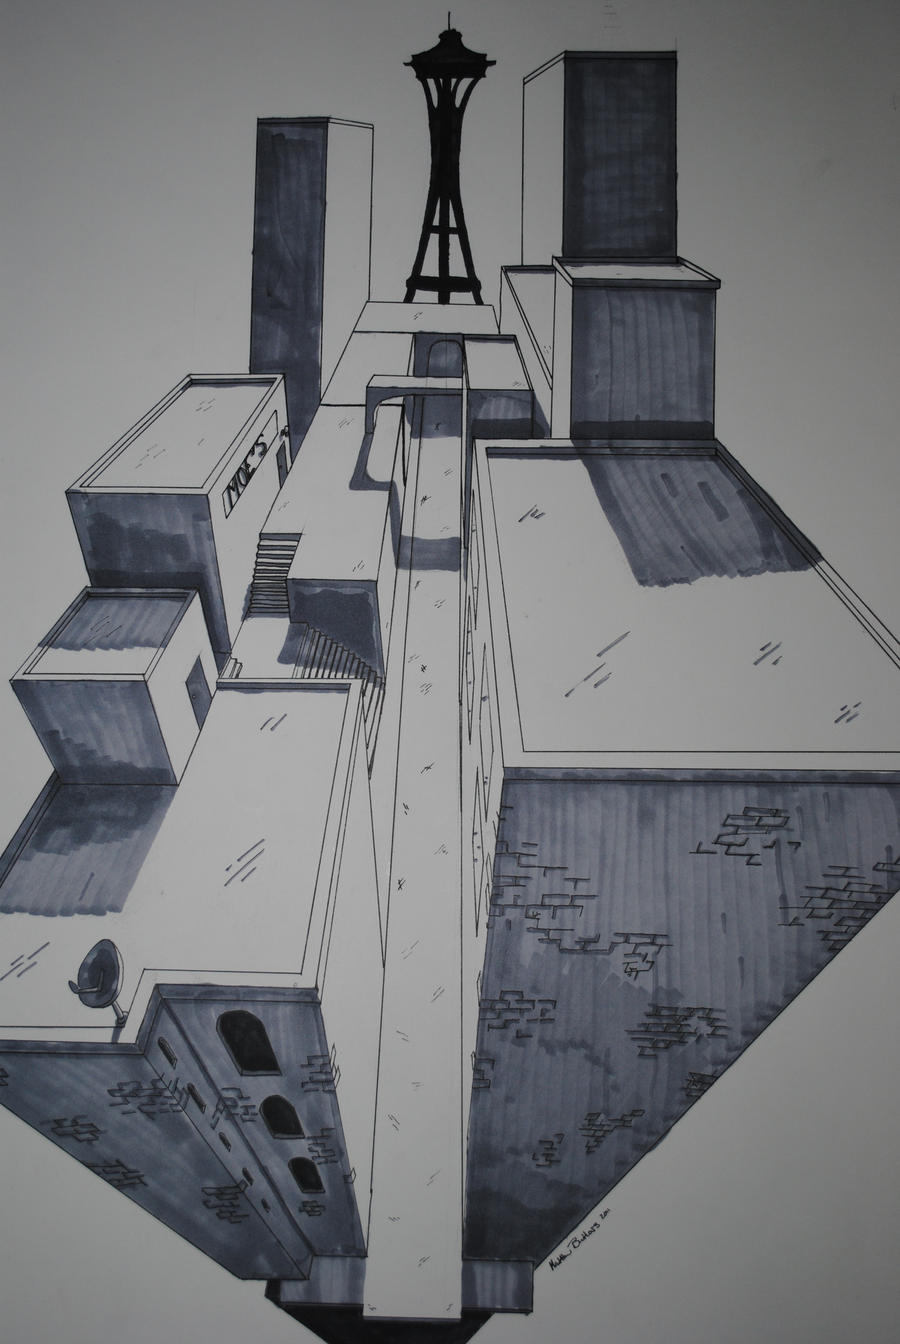 Abstract Architecture By Maestro In Process